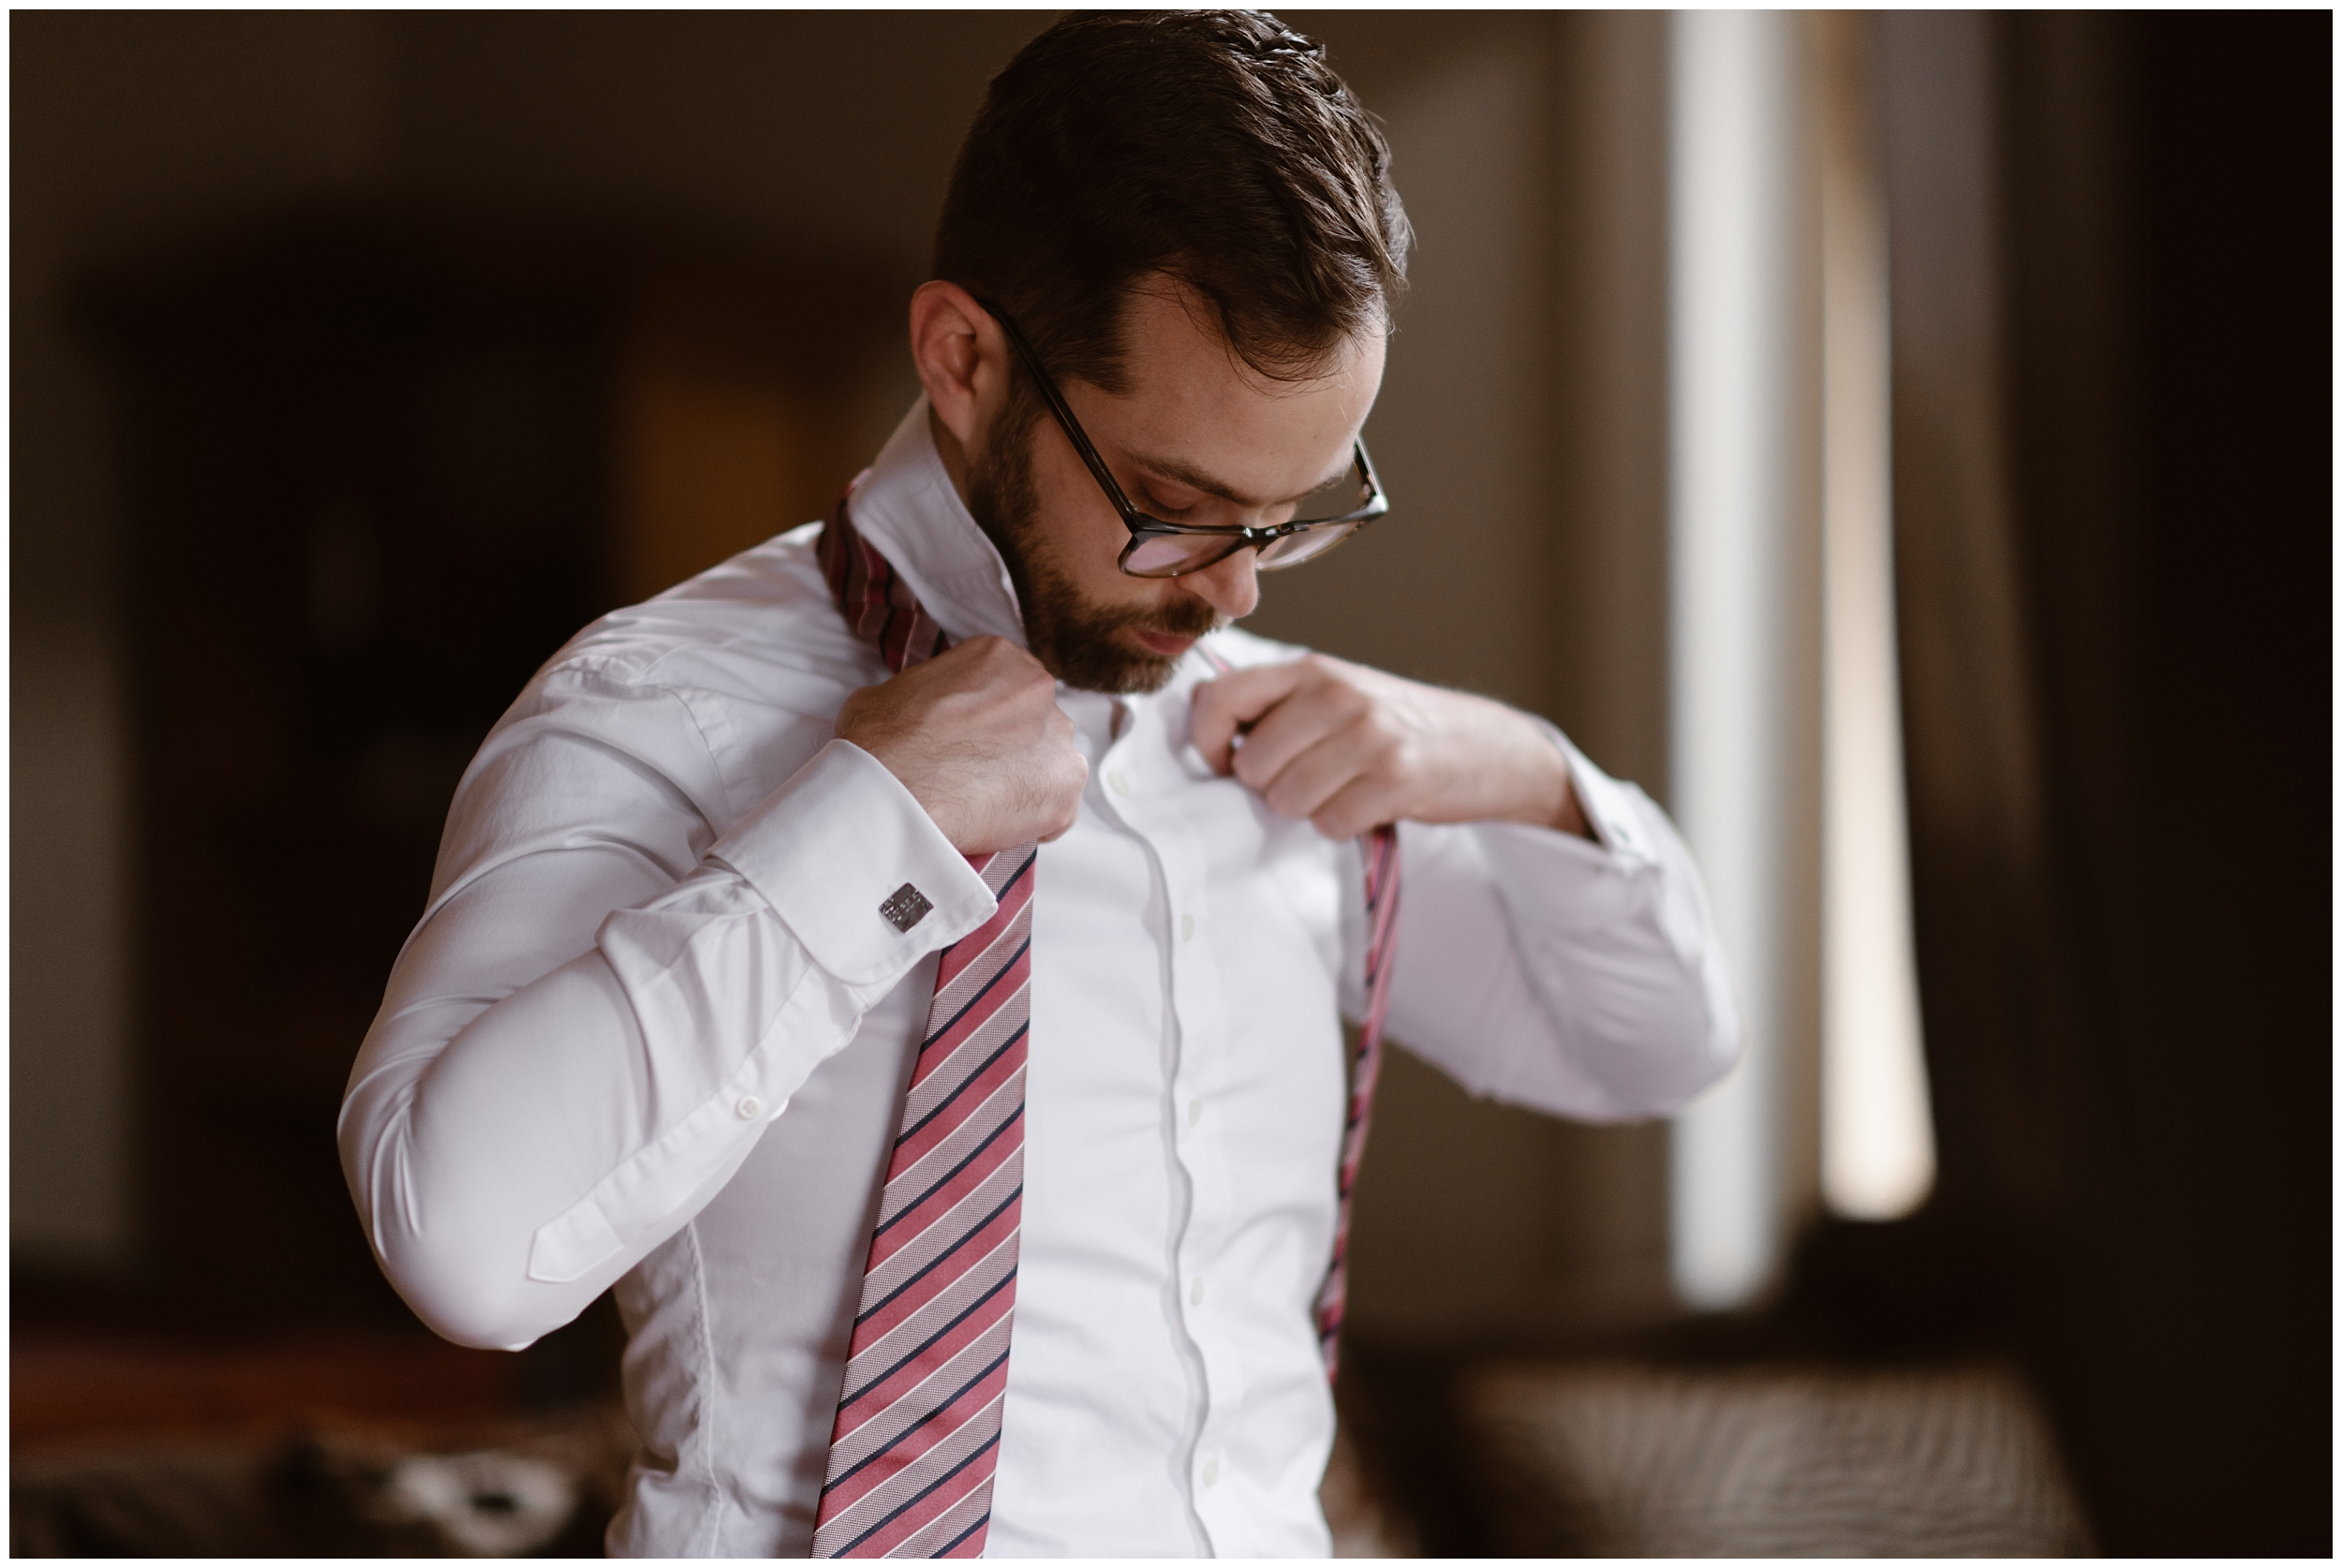 Logan, the groom, gets ready in the Airbnb in Ouray, Colorado that the couple rented as part of their adventure elopement. Logan adjusts a peach and light purple tie around his neck while he finishes up preparing for their 4x4 wedding. This photo was captured by Adventure Instead, an elopement wedding photographer.